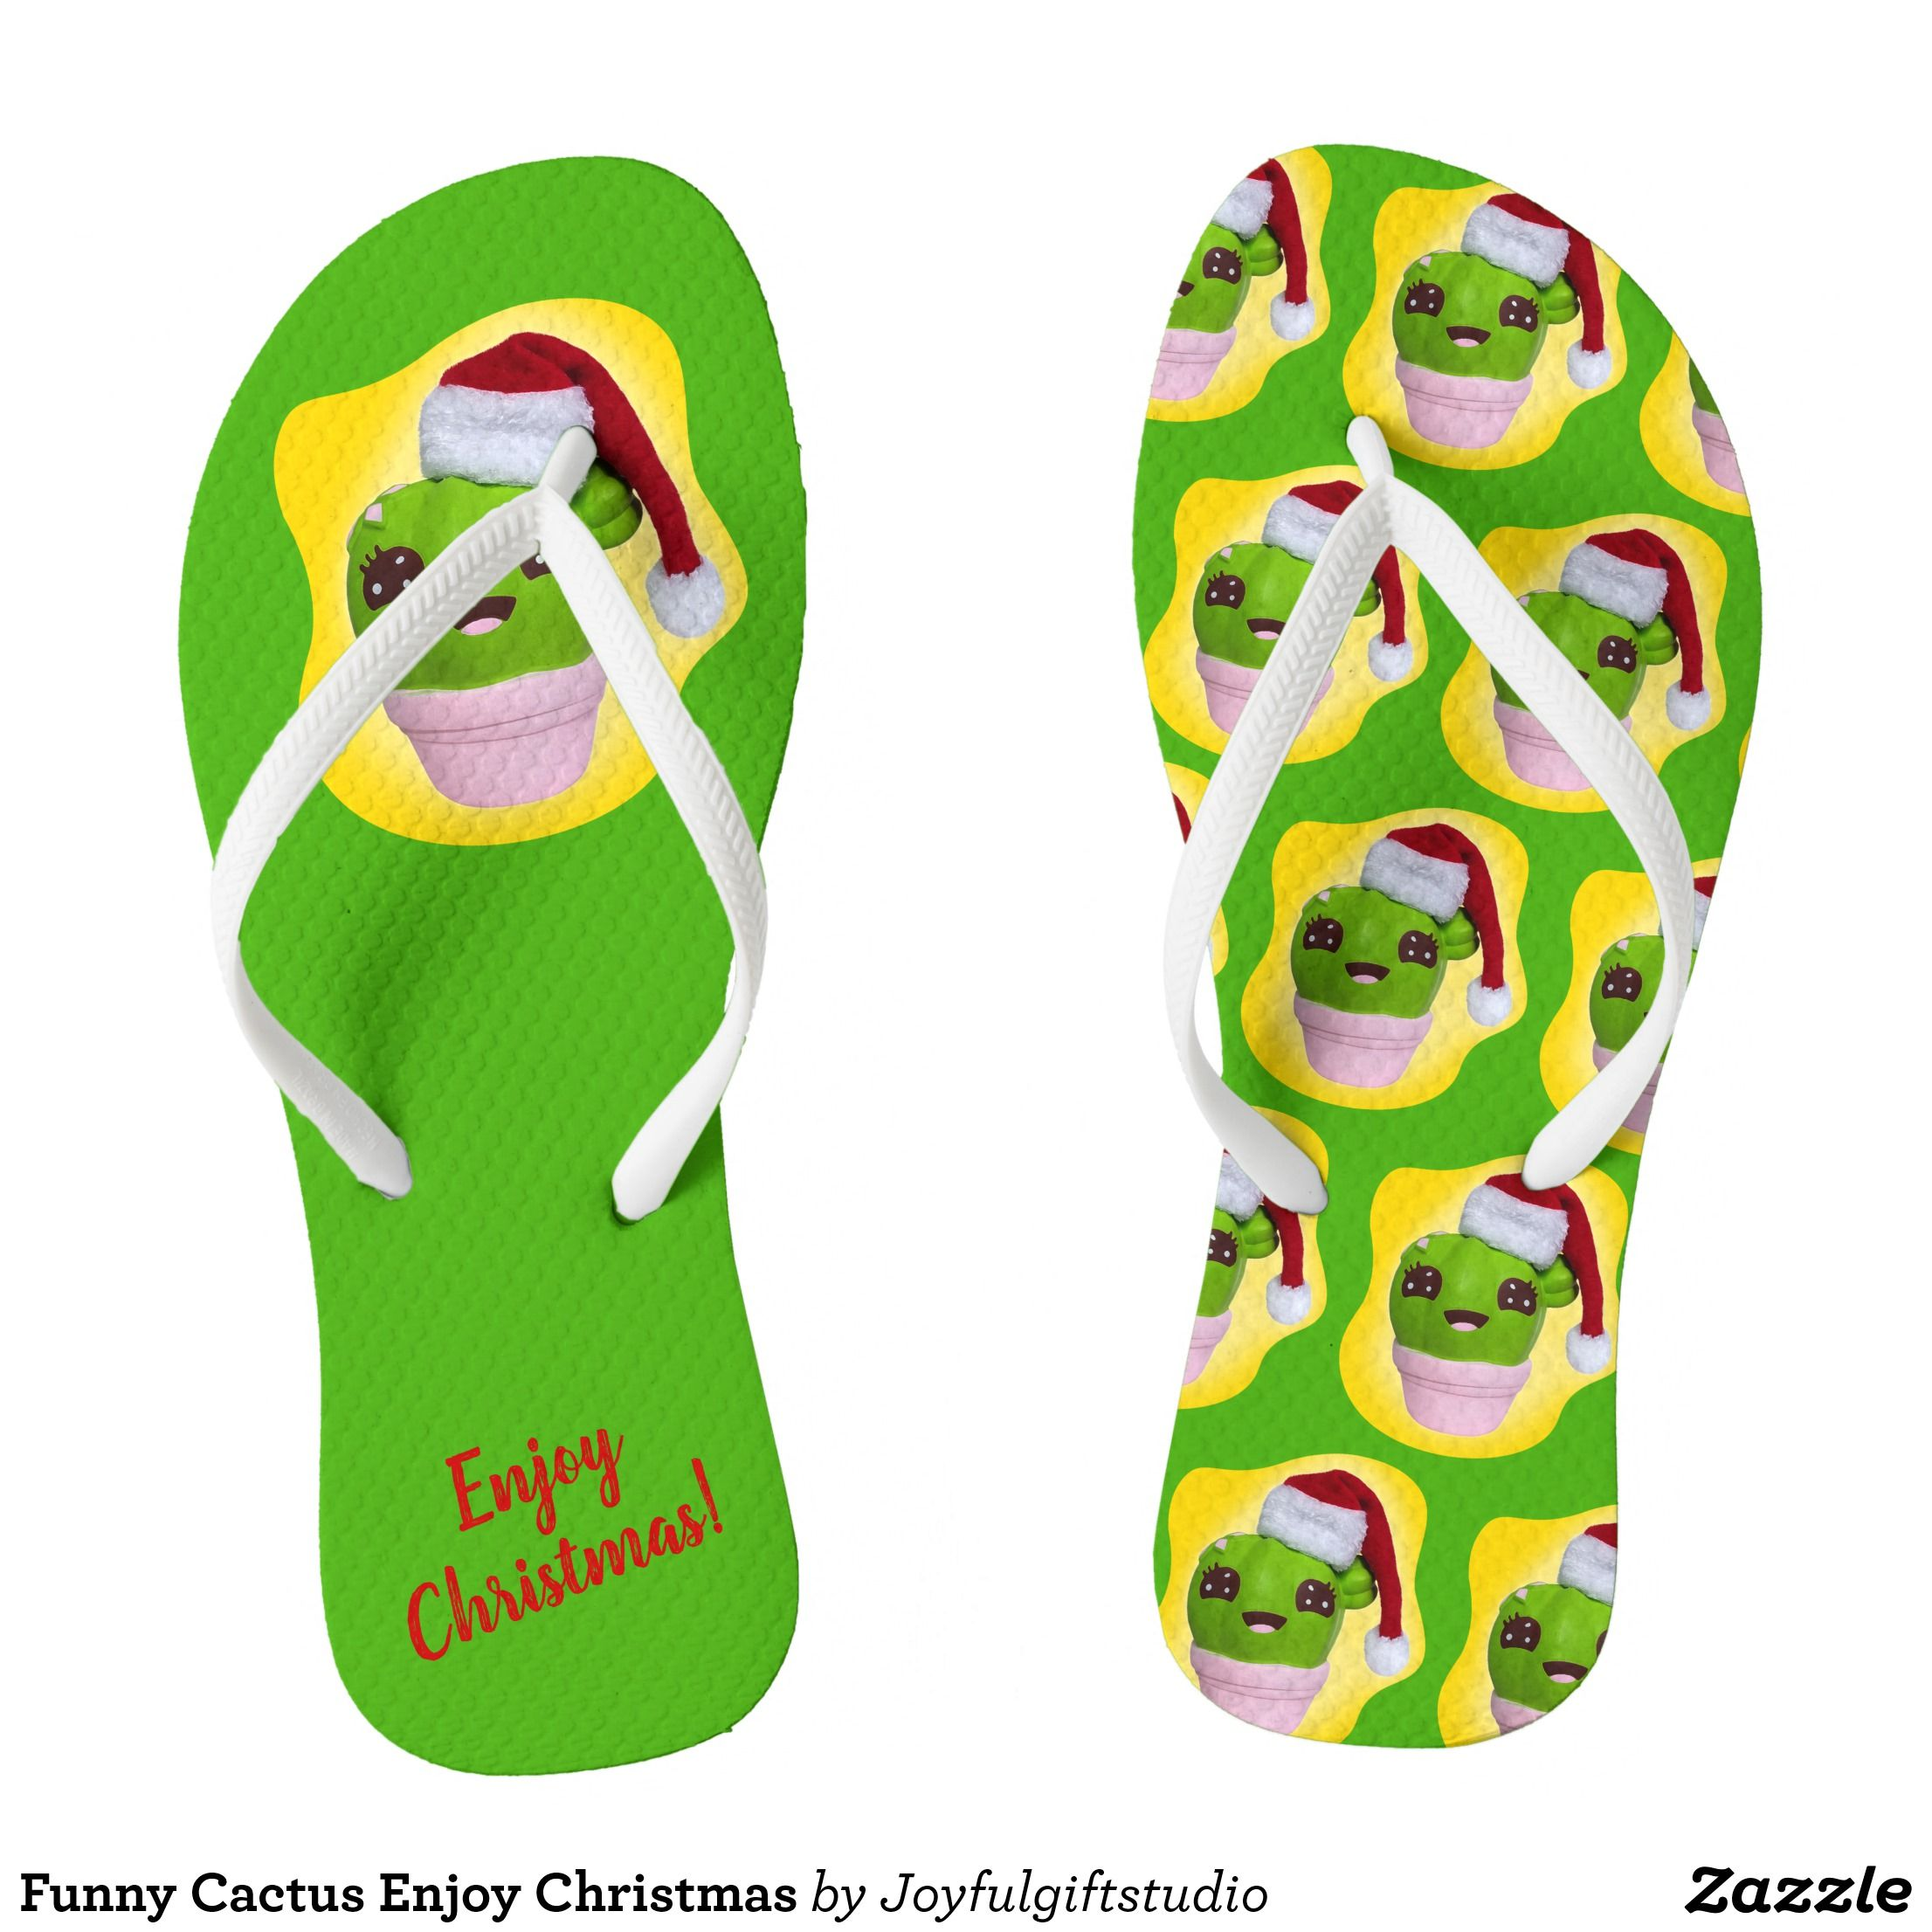 1bd6f534b4a7 Funny Cactus Enjoy Christmas Flip Flops - Durable Thong Style Hawaiian  Beach Sandals By Talented Fashion   Graphic Designers -  sandals  flipflops   hawaii ...